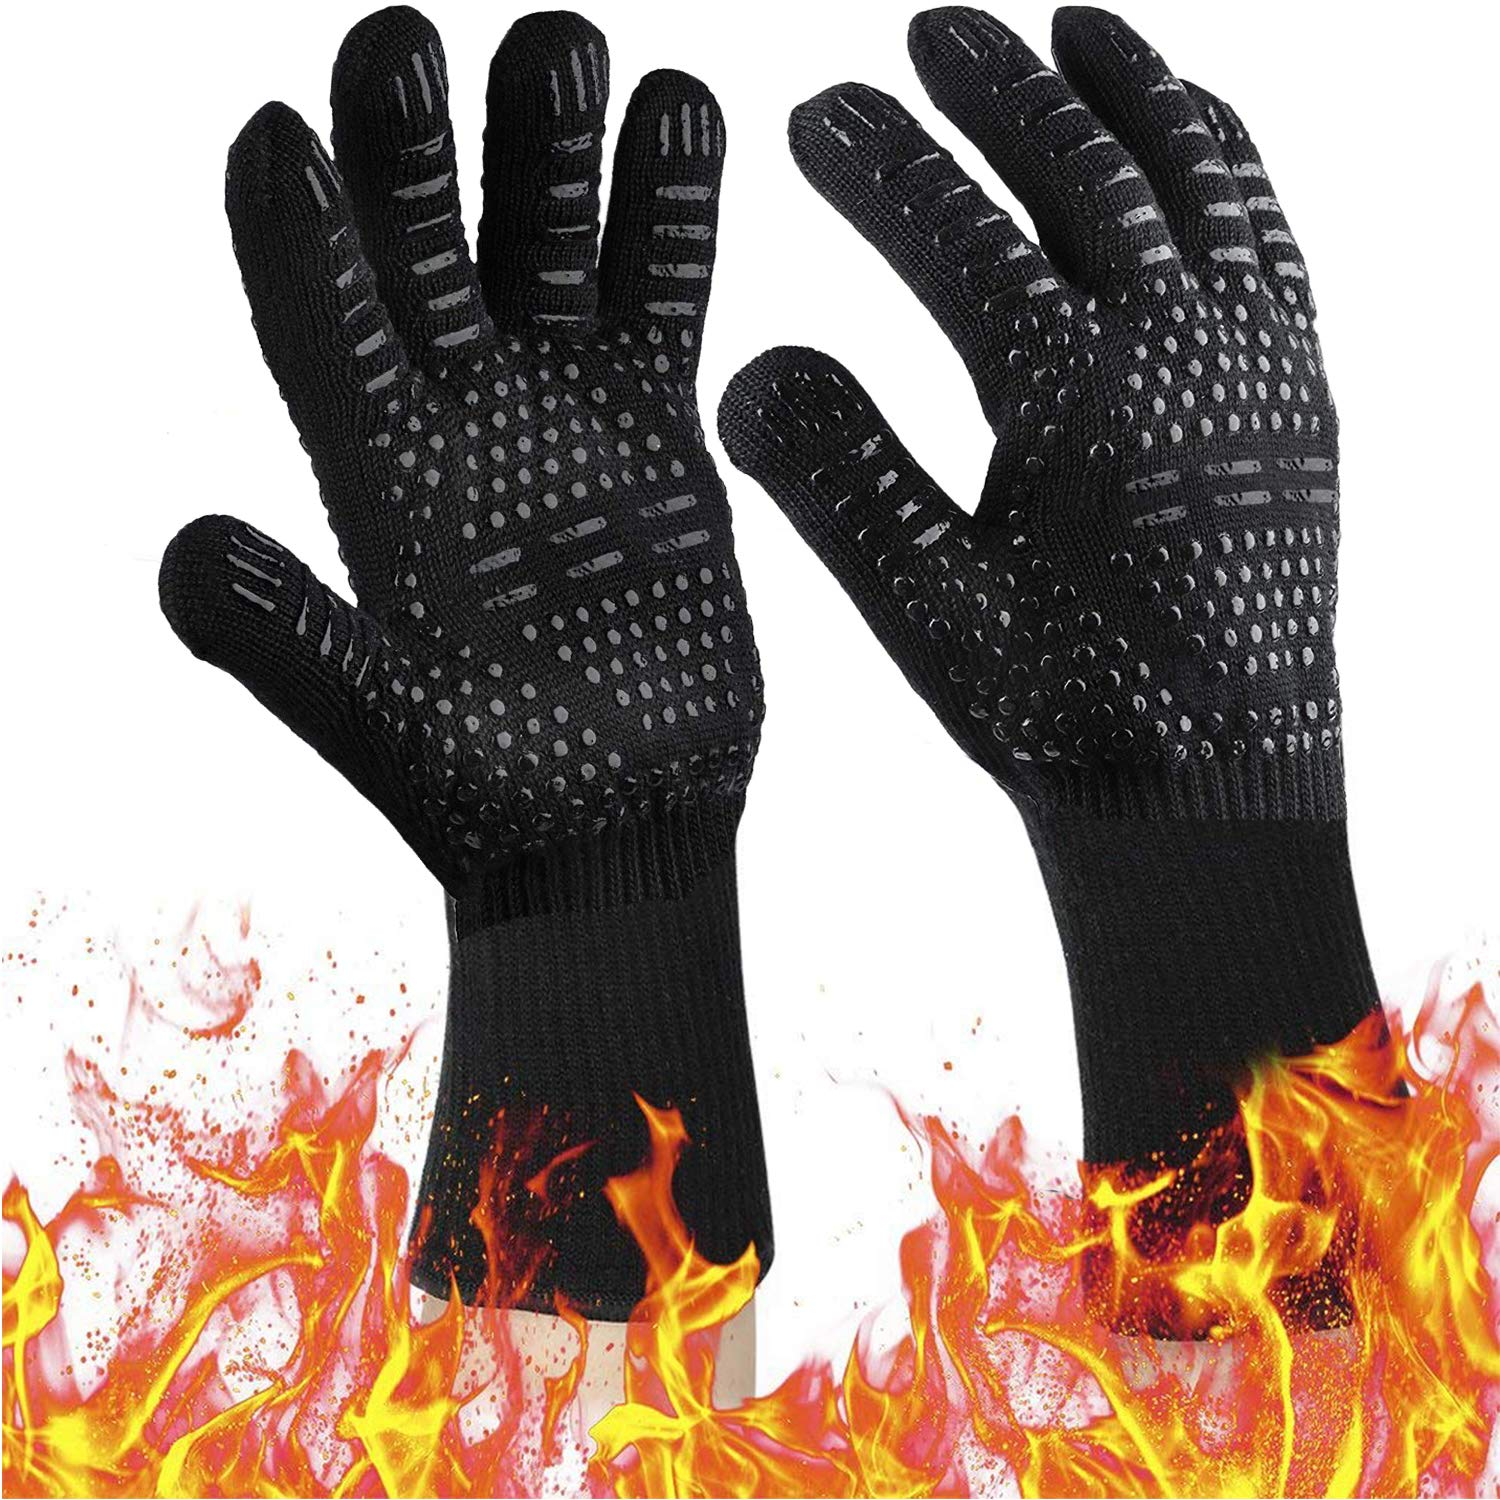 UCSLIFE BBQ Grill Gloves [Newest] 932℉ EN407 CE Heat Resistant - Oven Silicone Glove Fireproof for Smoker Baking - High-Temp Barbecue Grilling Potholders - Heat-Insulated Cooking Mitt